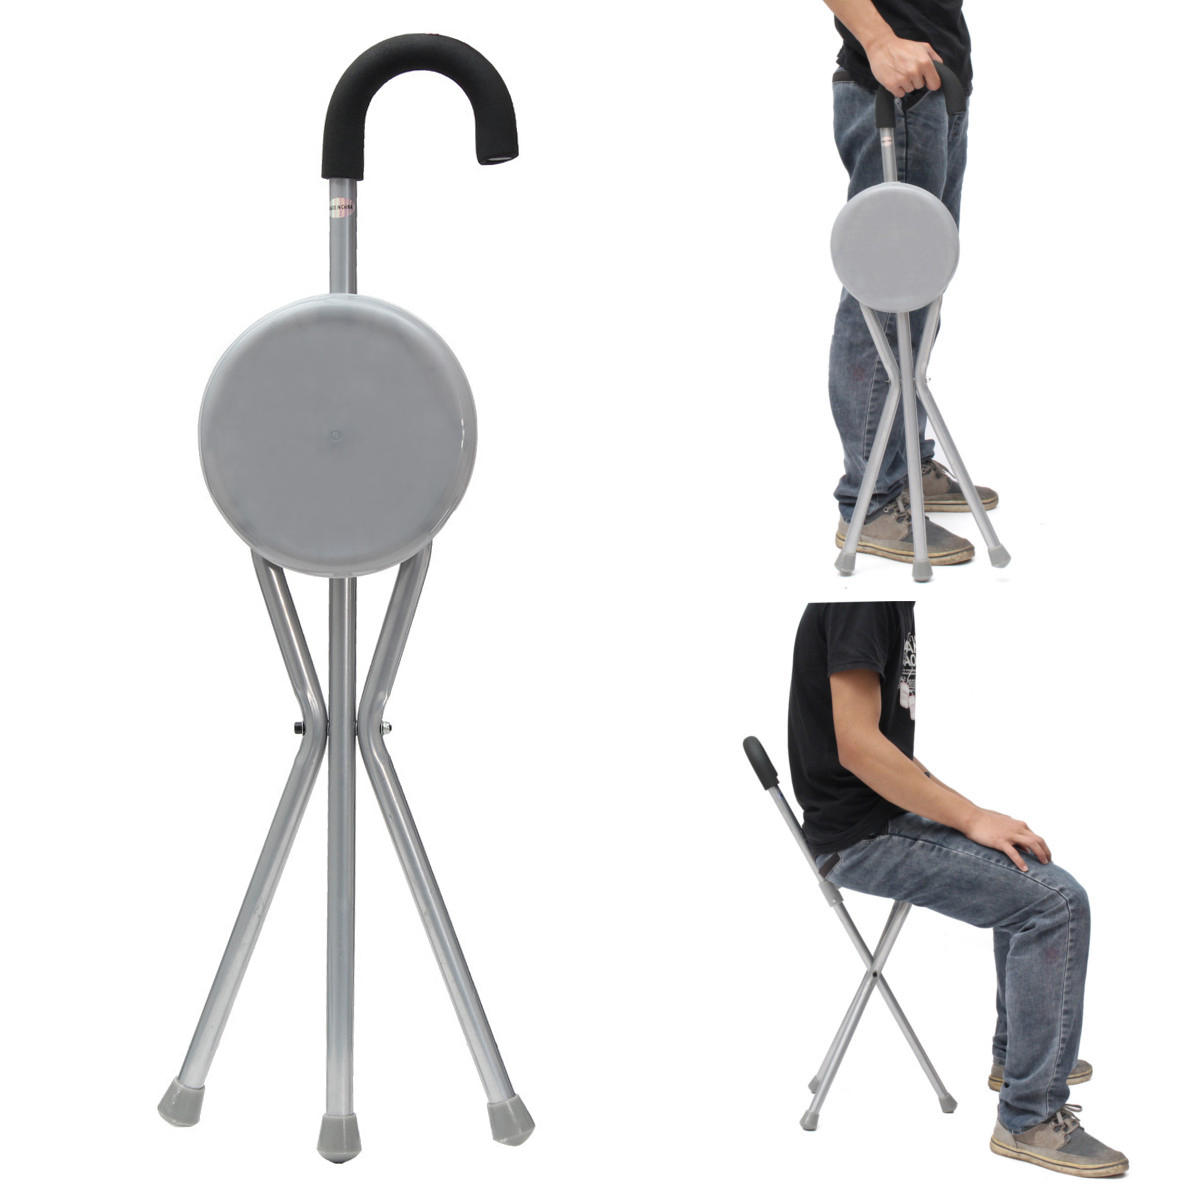 Wondrous Outdoor Travel Folding Stool Chair Portable Tripod Cane Walking Stick Seat Camping Hiking Caraccident5 Cool Chair Designs And Ideas Caraccident5Info